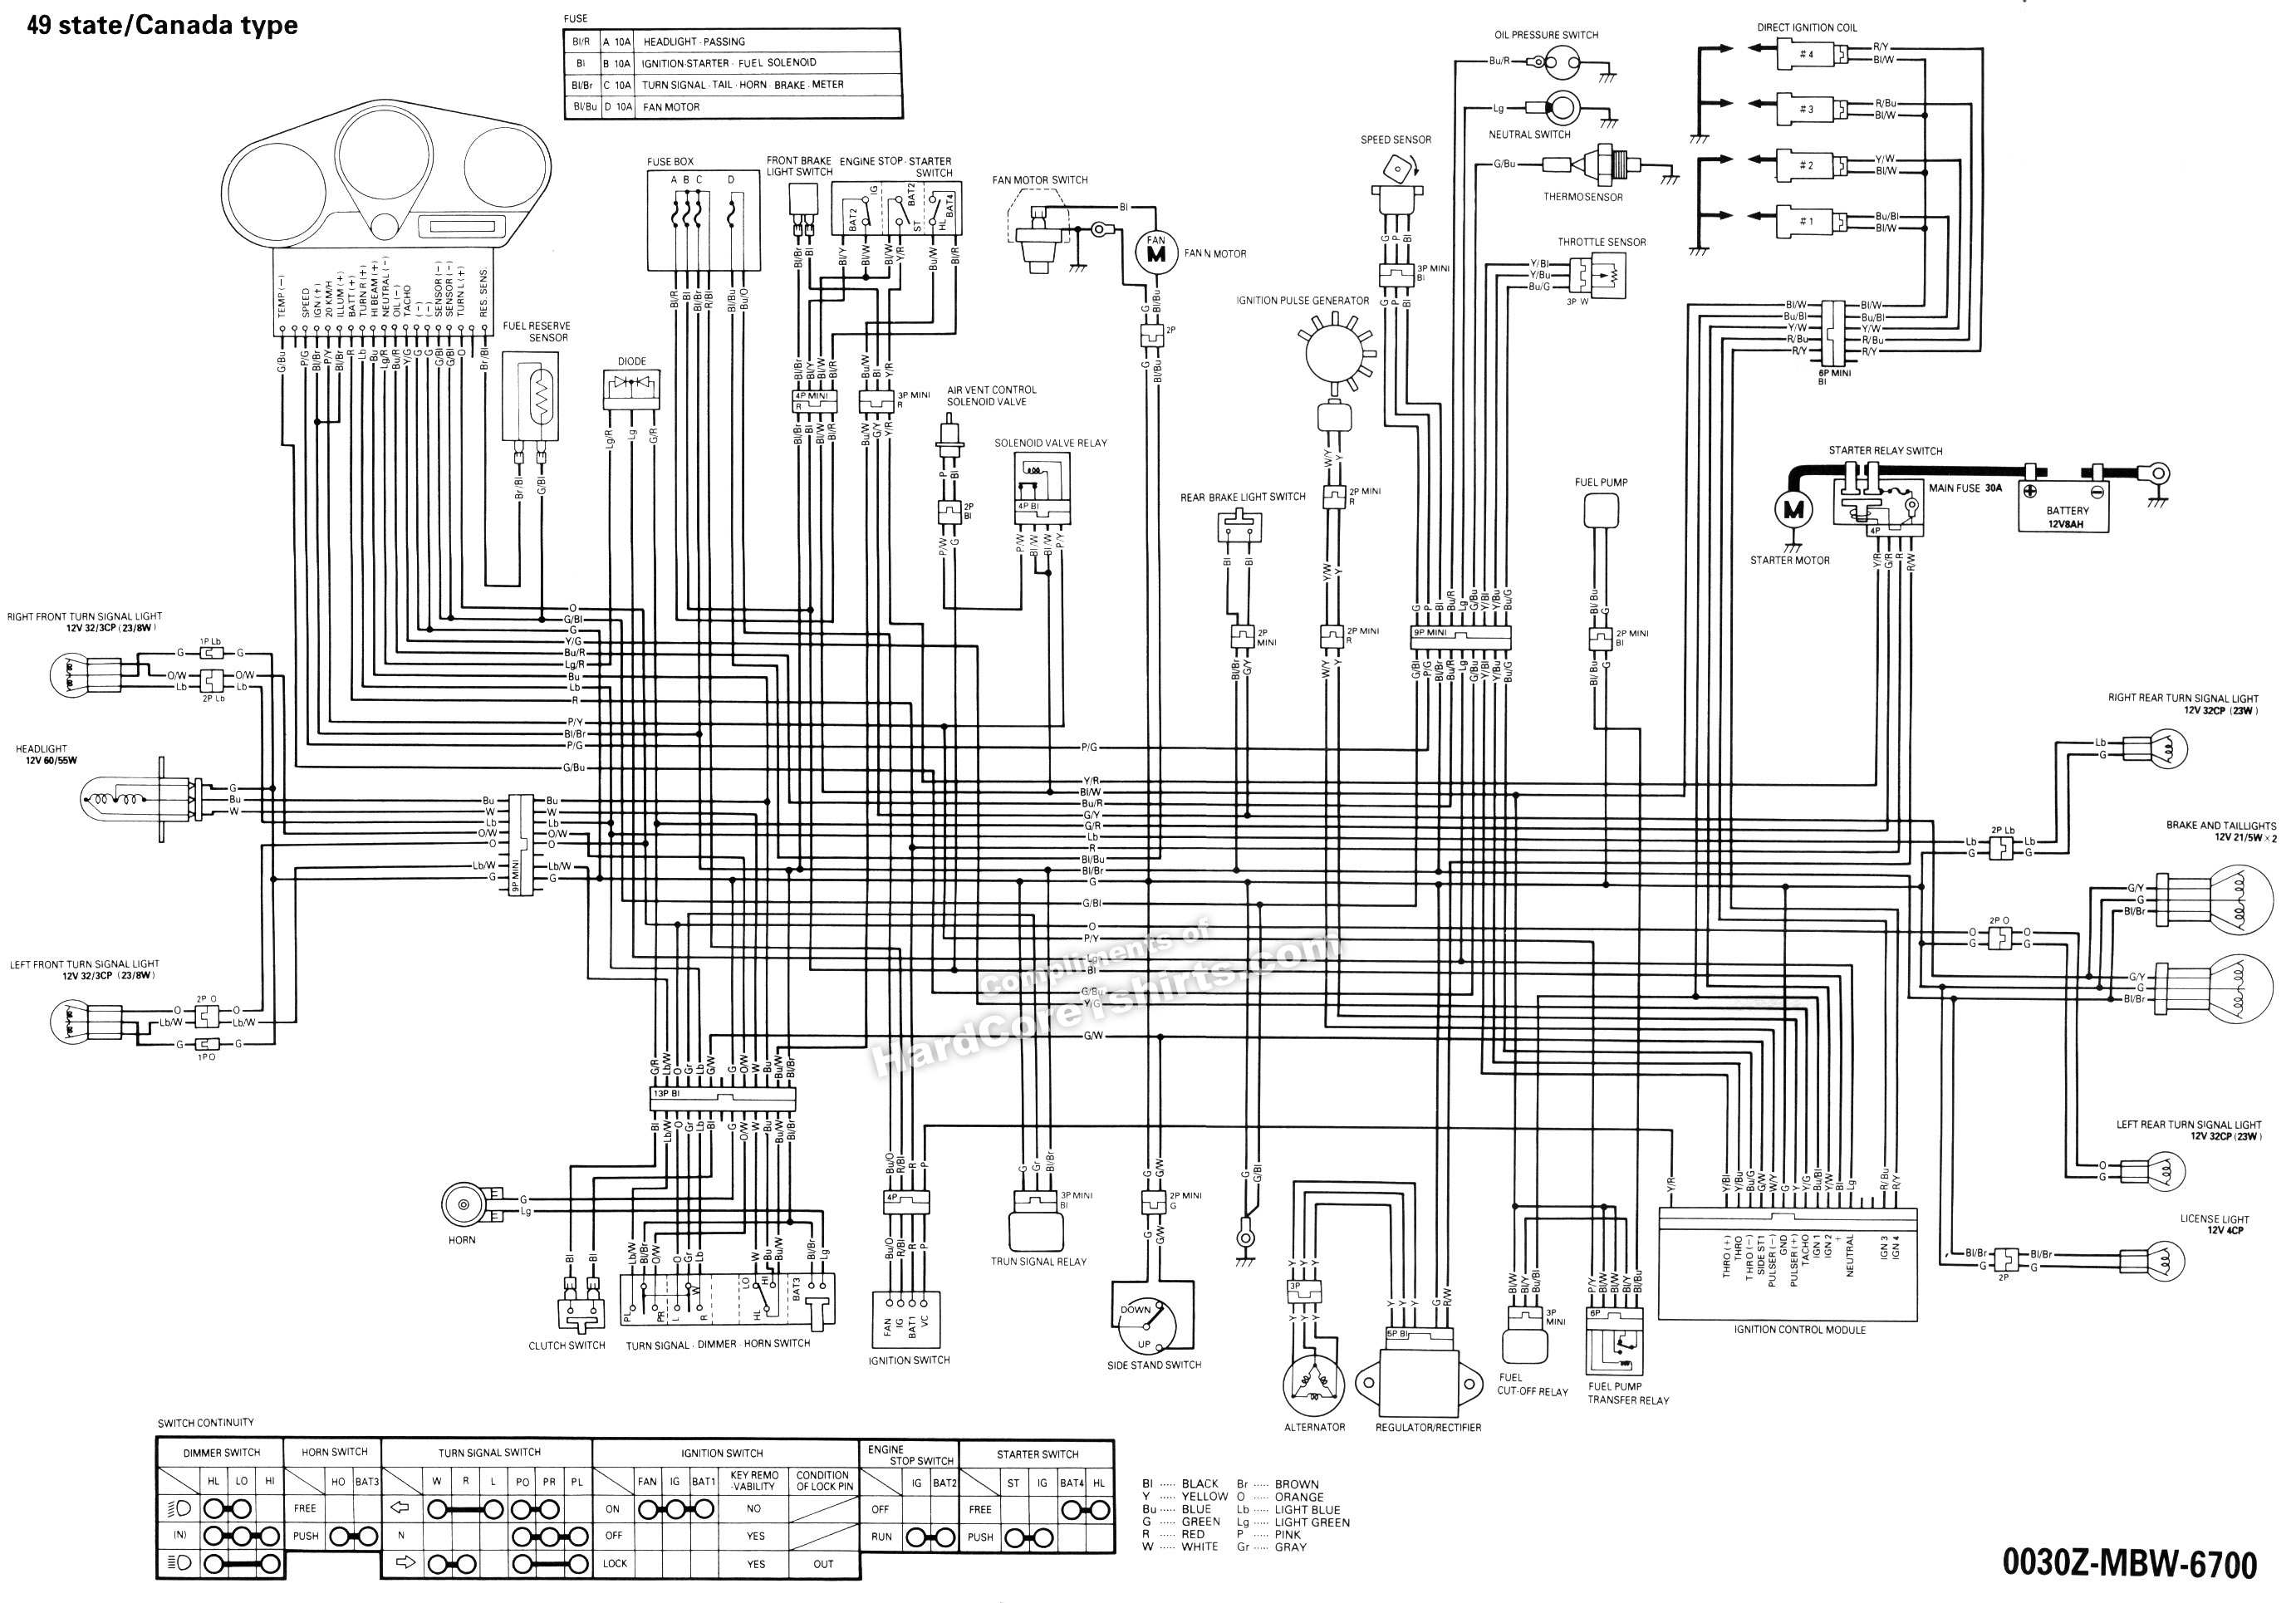 98 F3 Ignition coil wires   Honda Motorcycles - FireBlades.org   Wiring Diagram For 1998 Cbr 600 F3      FireBlades.org